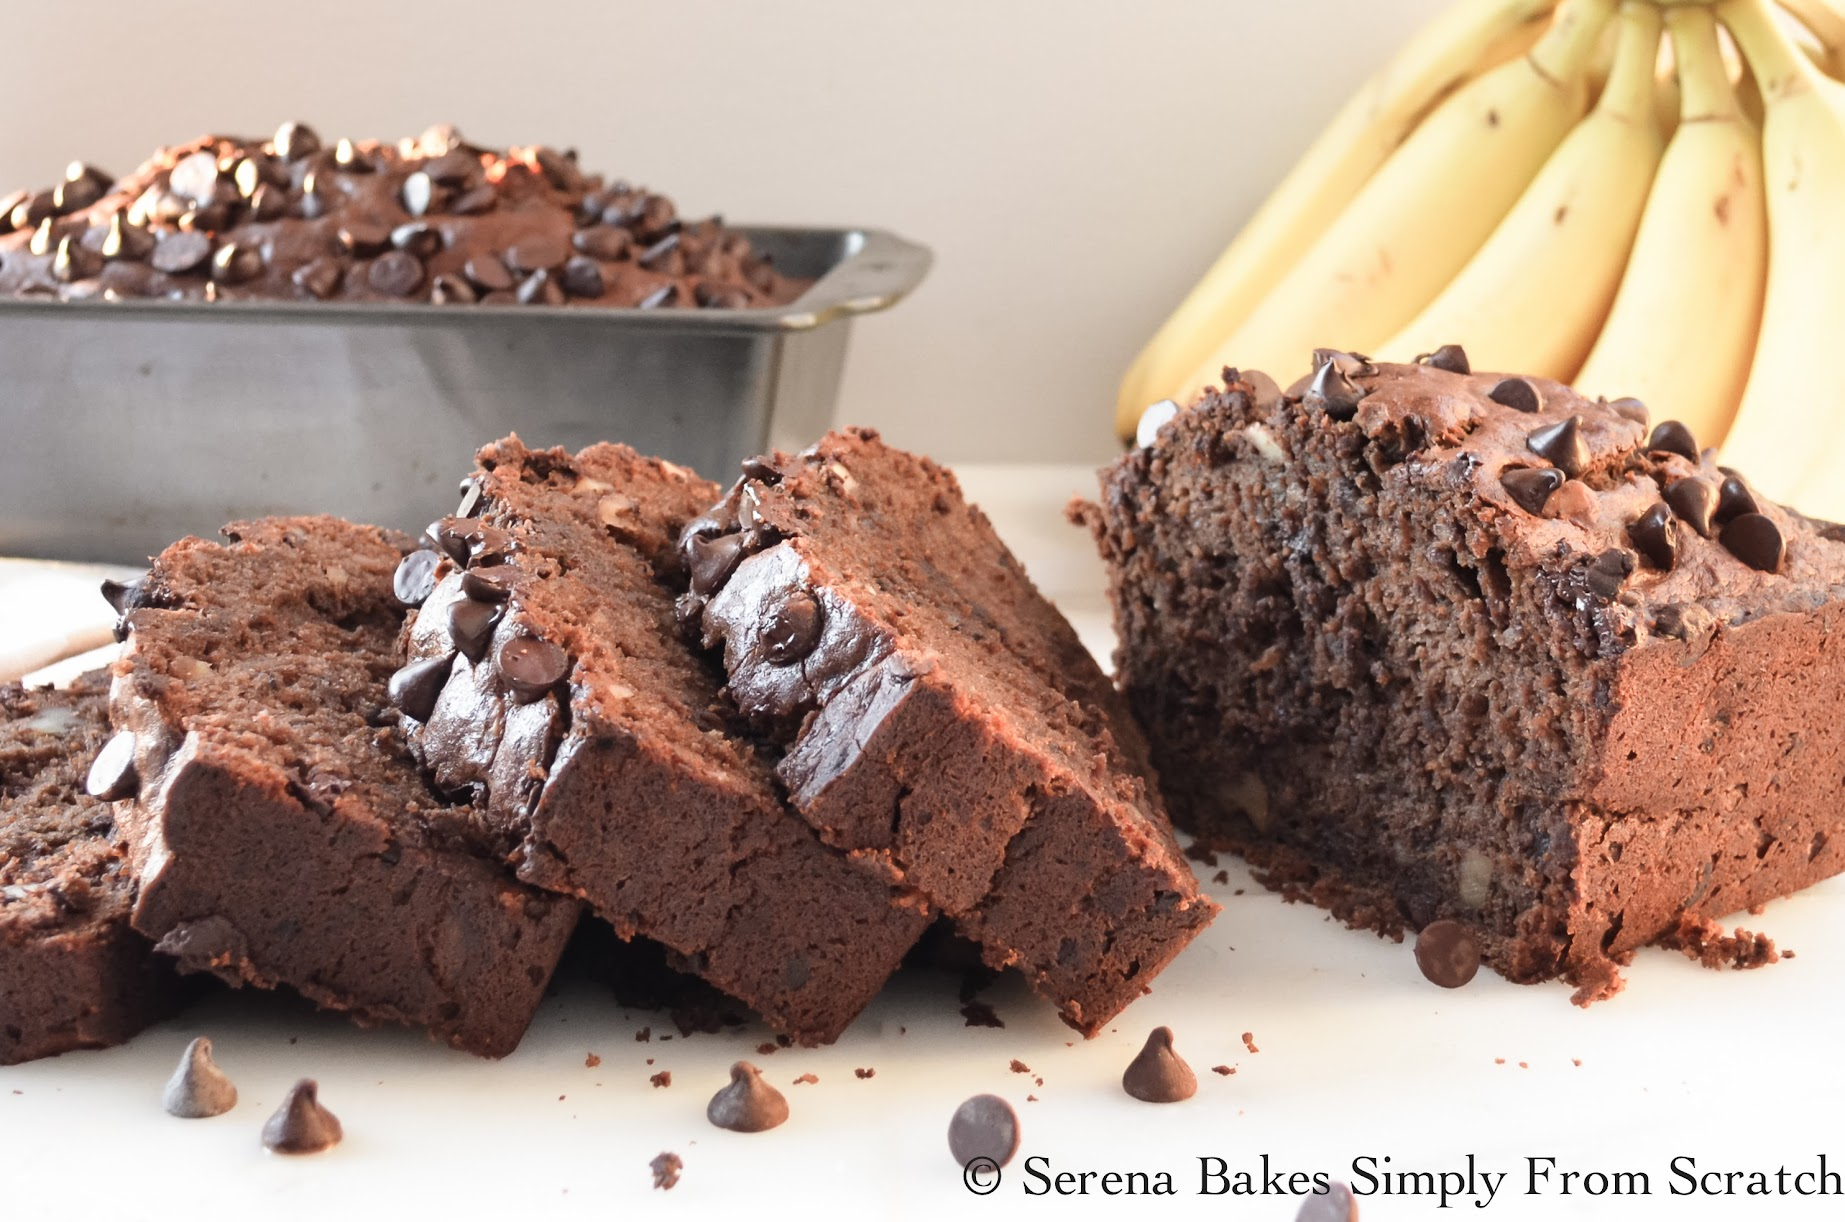 Double Chocolate Banana Bread the perfect use for over ripe bananas. www.serenabakessimplyfromscratch.com